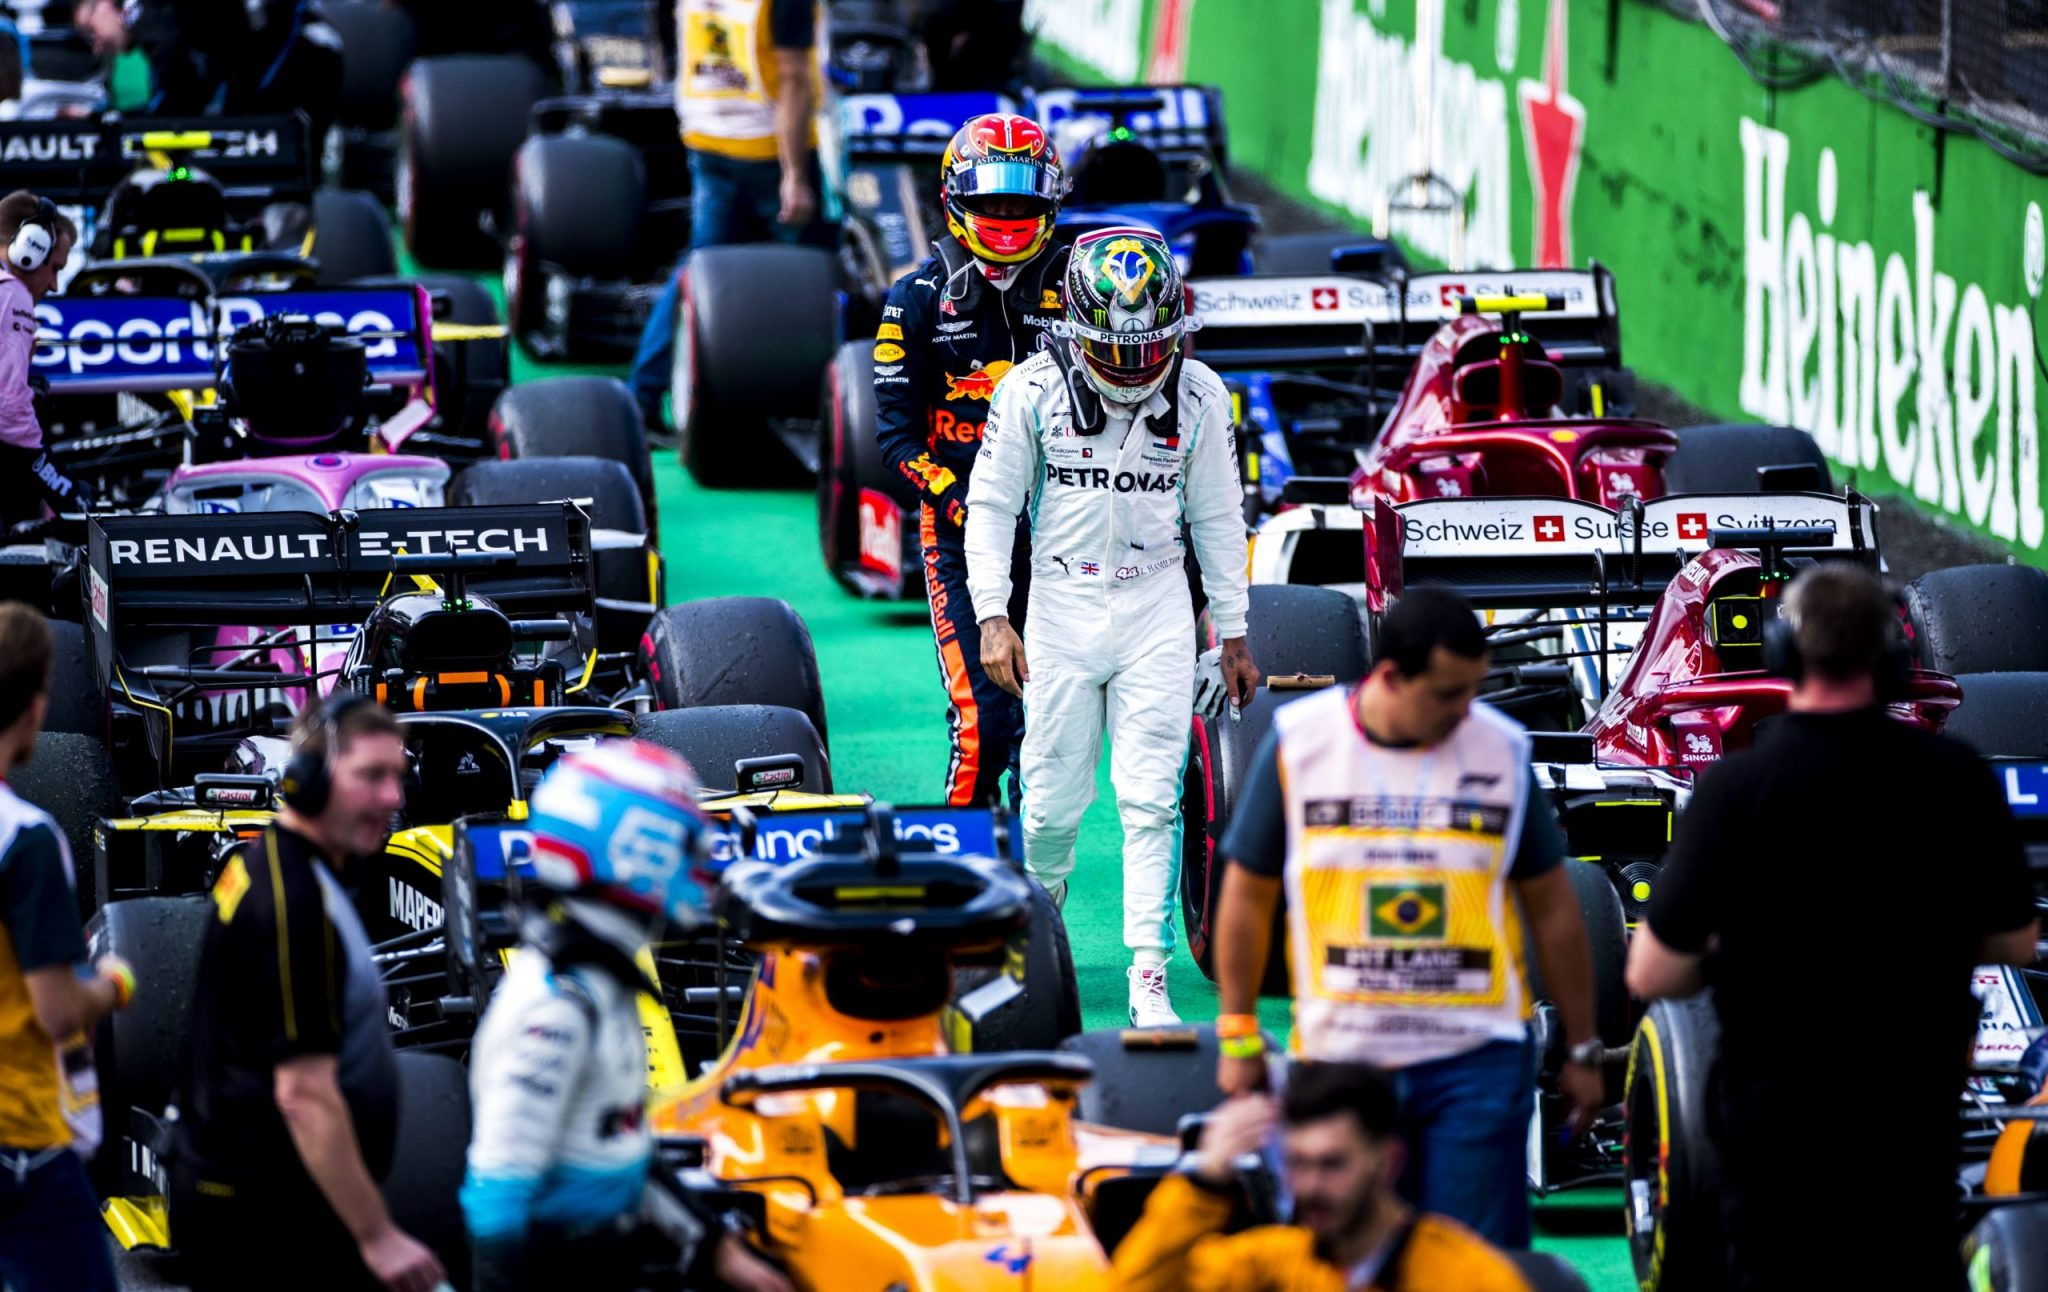 During the Brazilian Formula One Grand Prix at Autodromo Jose Carlos Pace on November 17, 2019 in Sao Paulo, Brazil. (Photograph by Vladimir Rys)